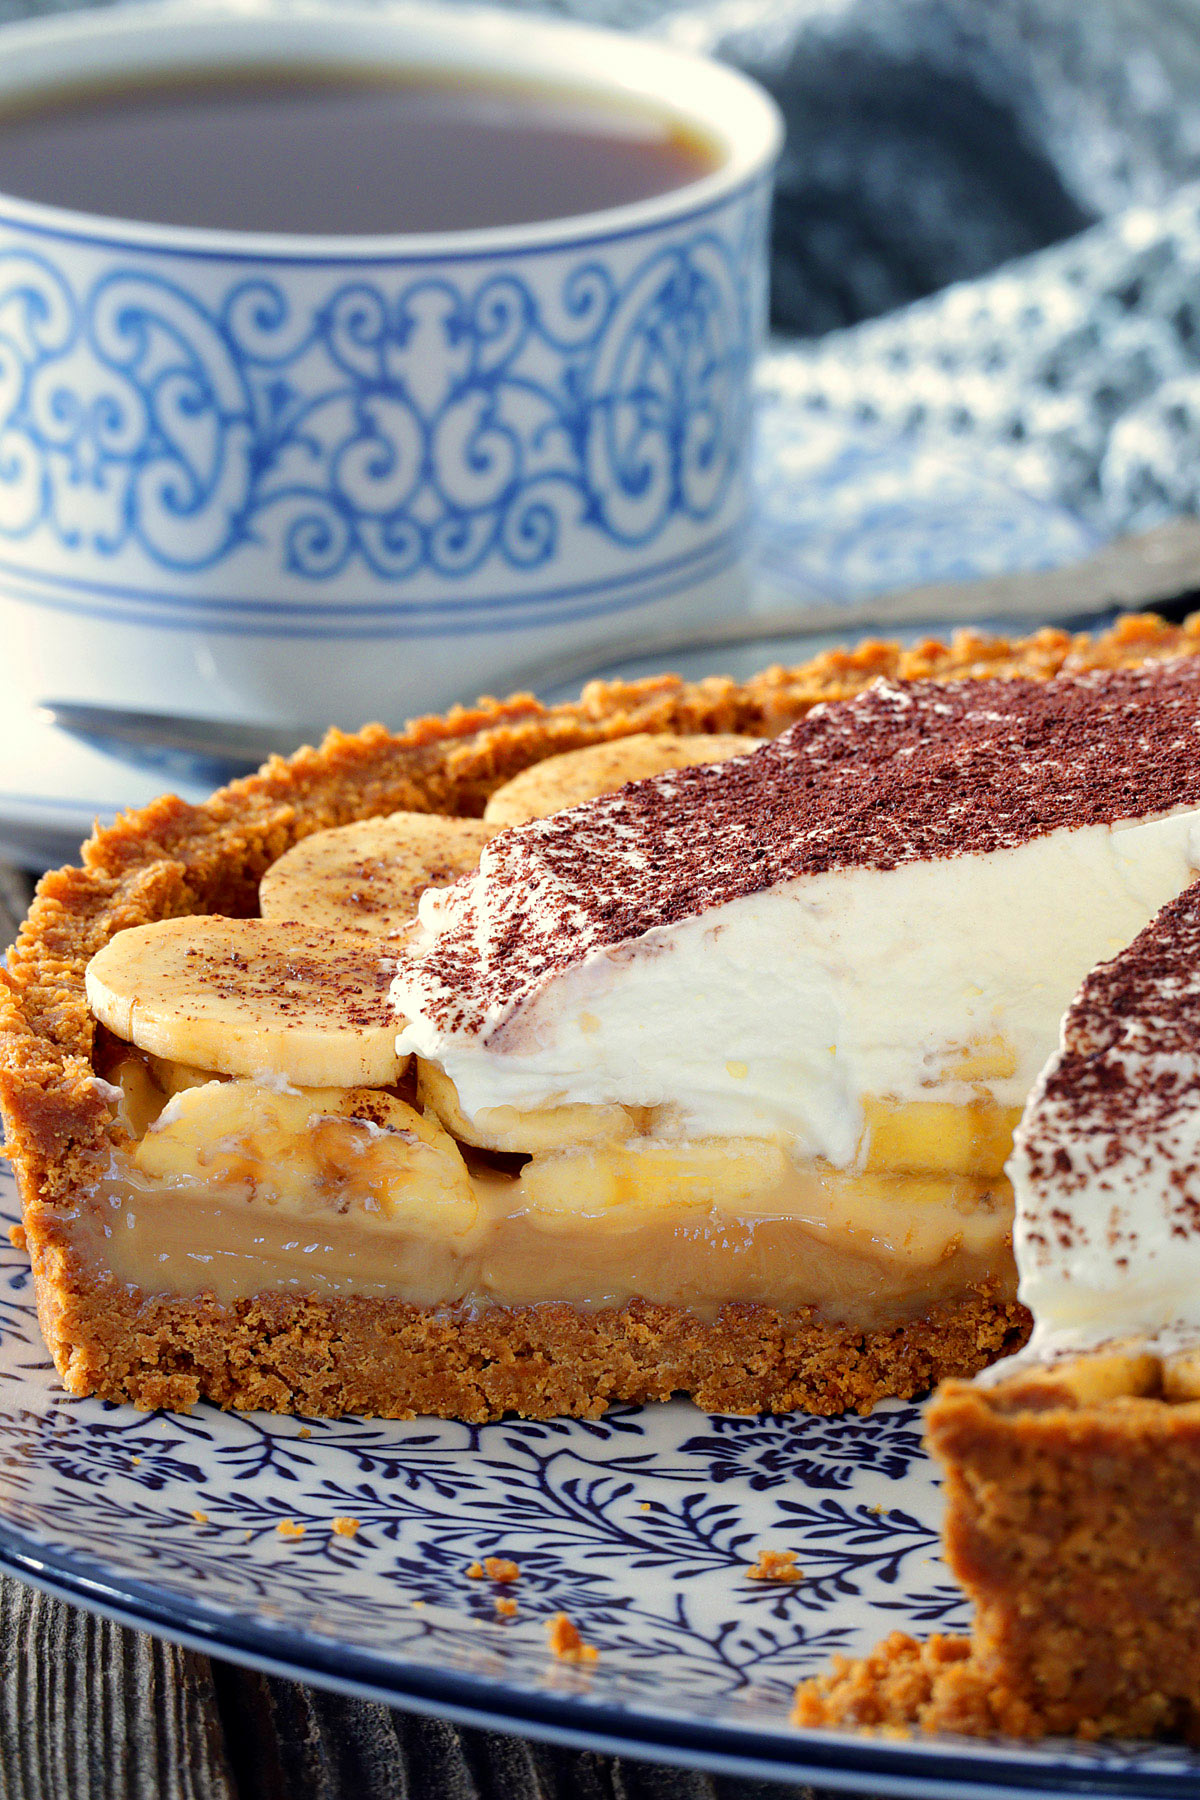 This easy Banoffee Pie is the easiest dessert I've made and no-bake pie is always one of my favorite. All done under 30 minutes including making caramel from scratch. | www.foxyfolksy.com